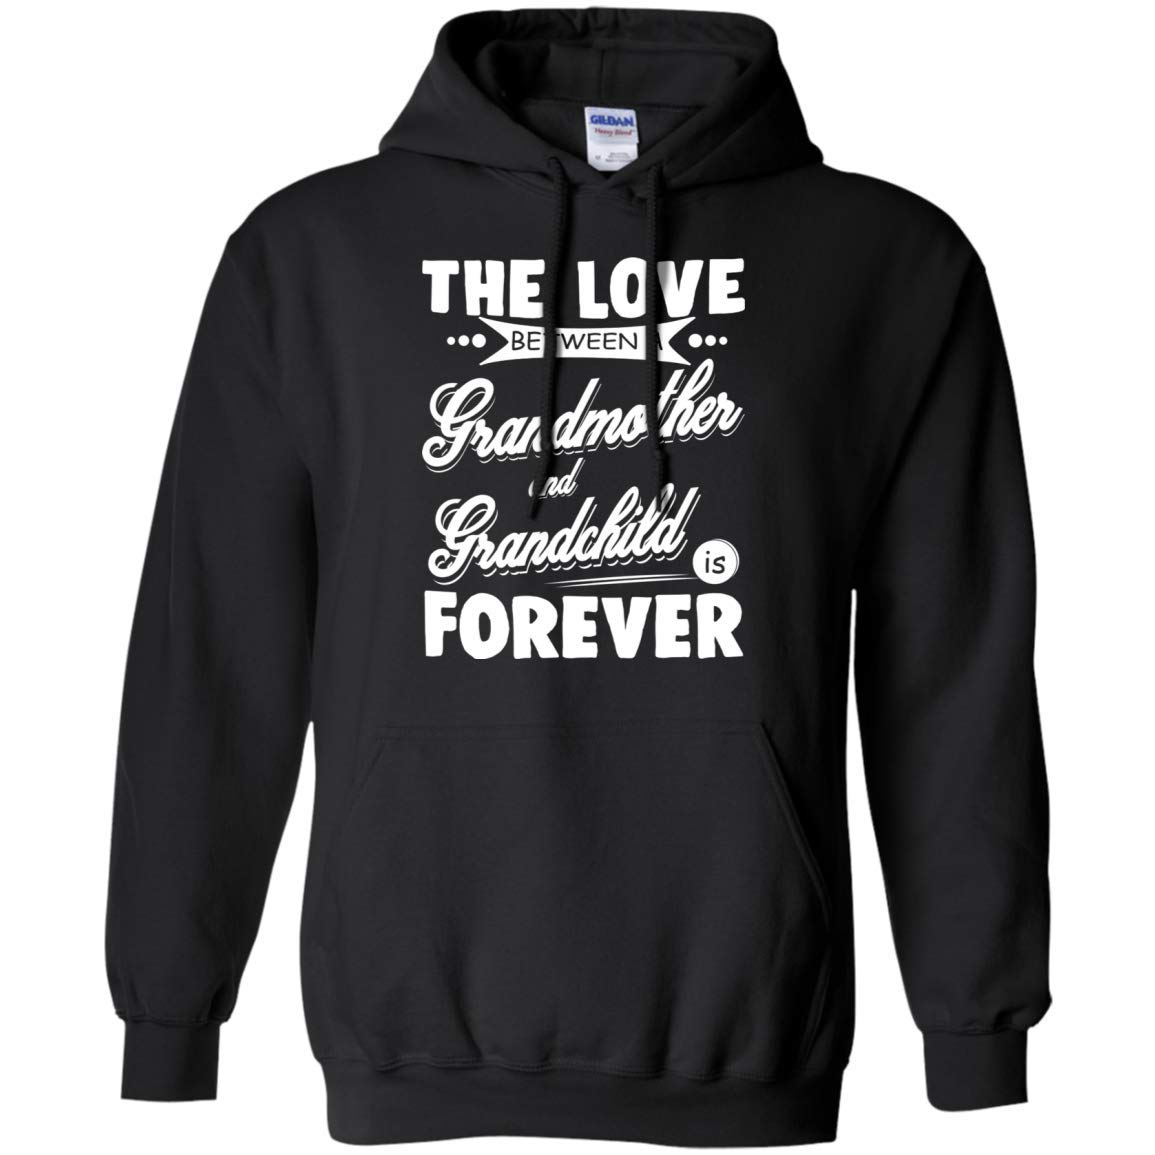 G185 Gildan Pullover Hoodie 8 oz. Teely Shop Mens The Love Between A Grandmother And Grandchild Is Forever